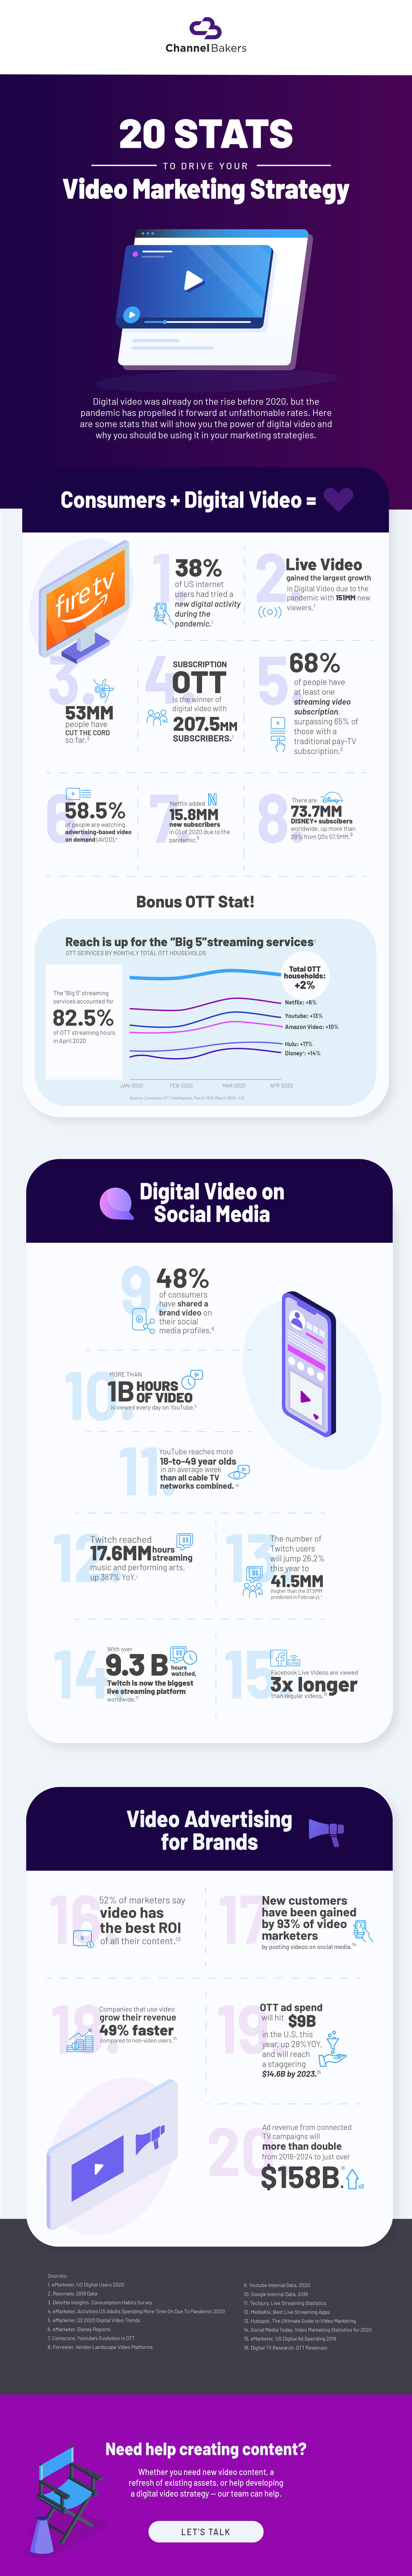 20 Stats Infographic of Video Marketing stats.